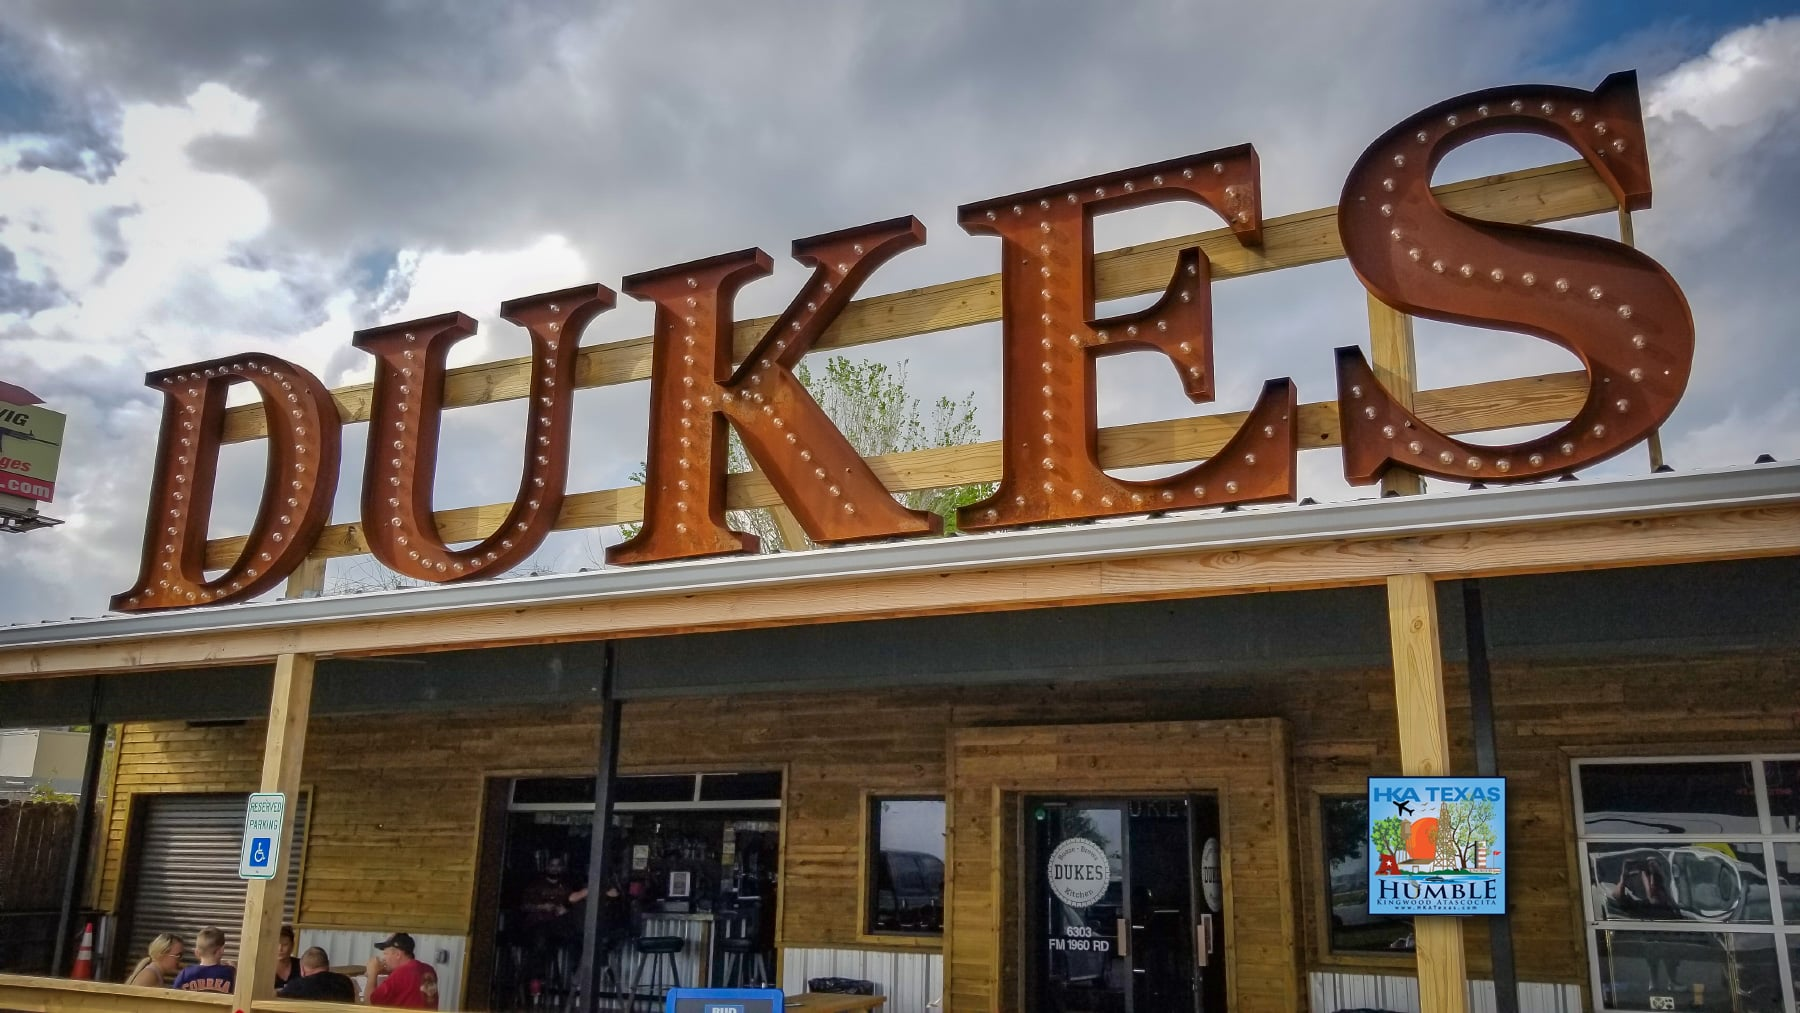 Dukes Bar Kitchen Humble